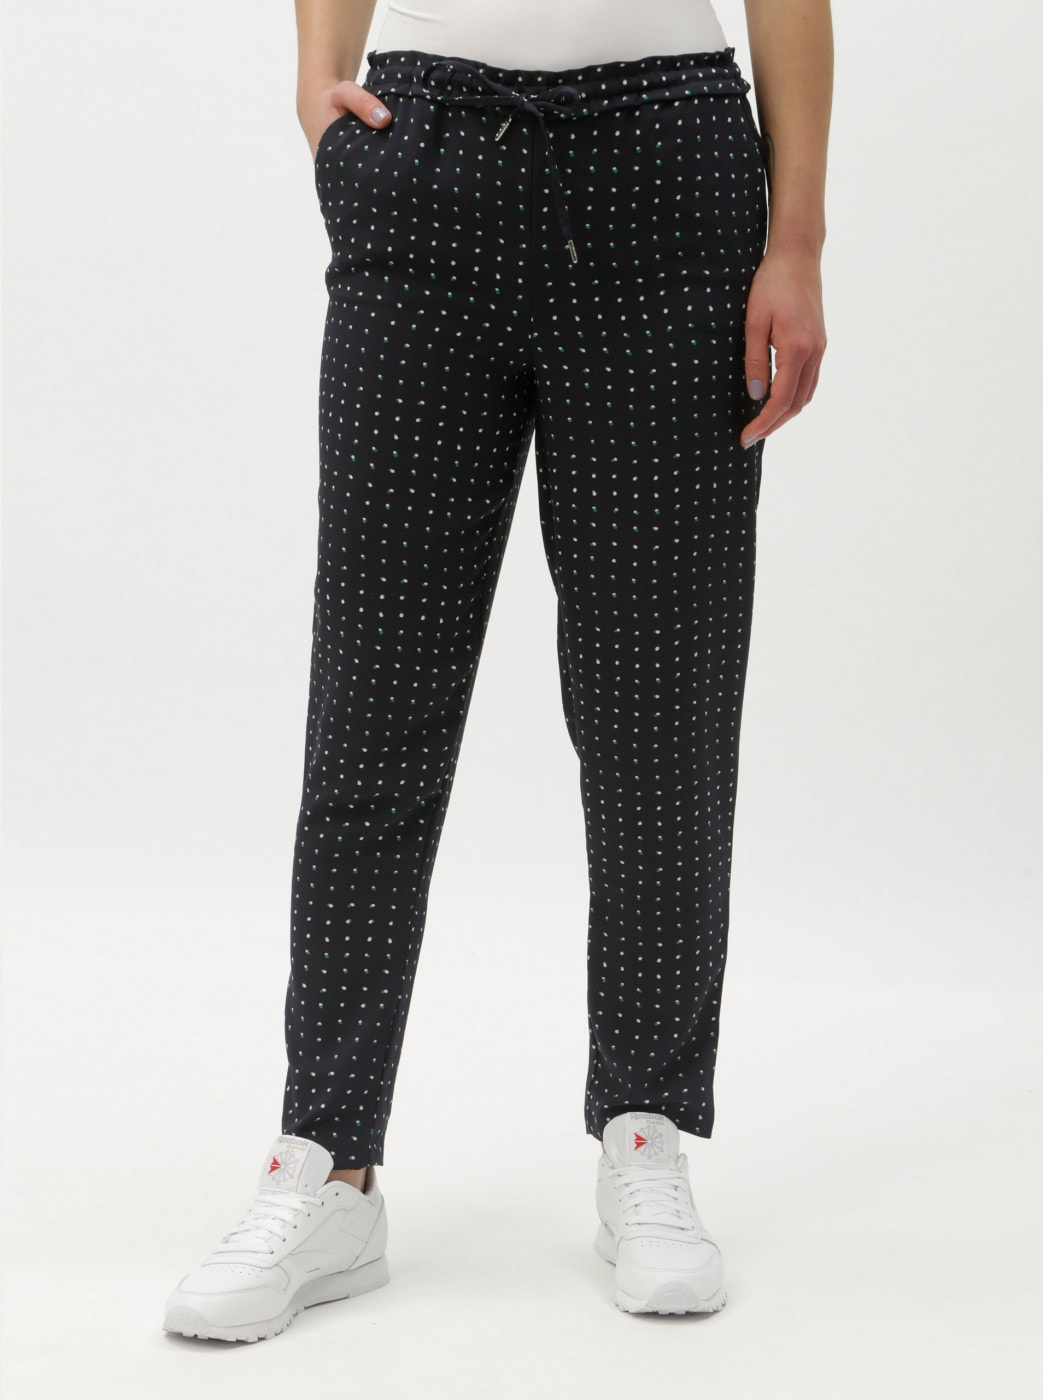 Dark Blue Patterned Pants ONLY Michelle